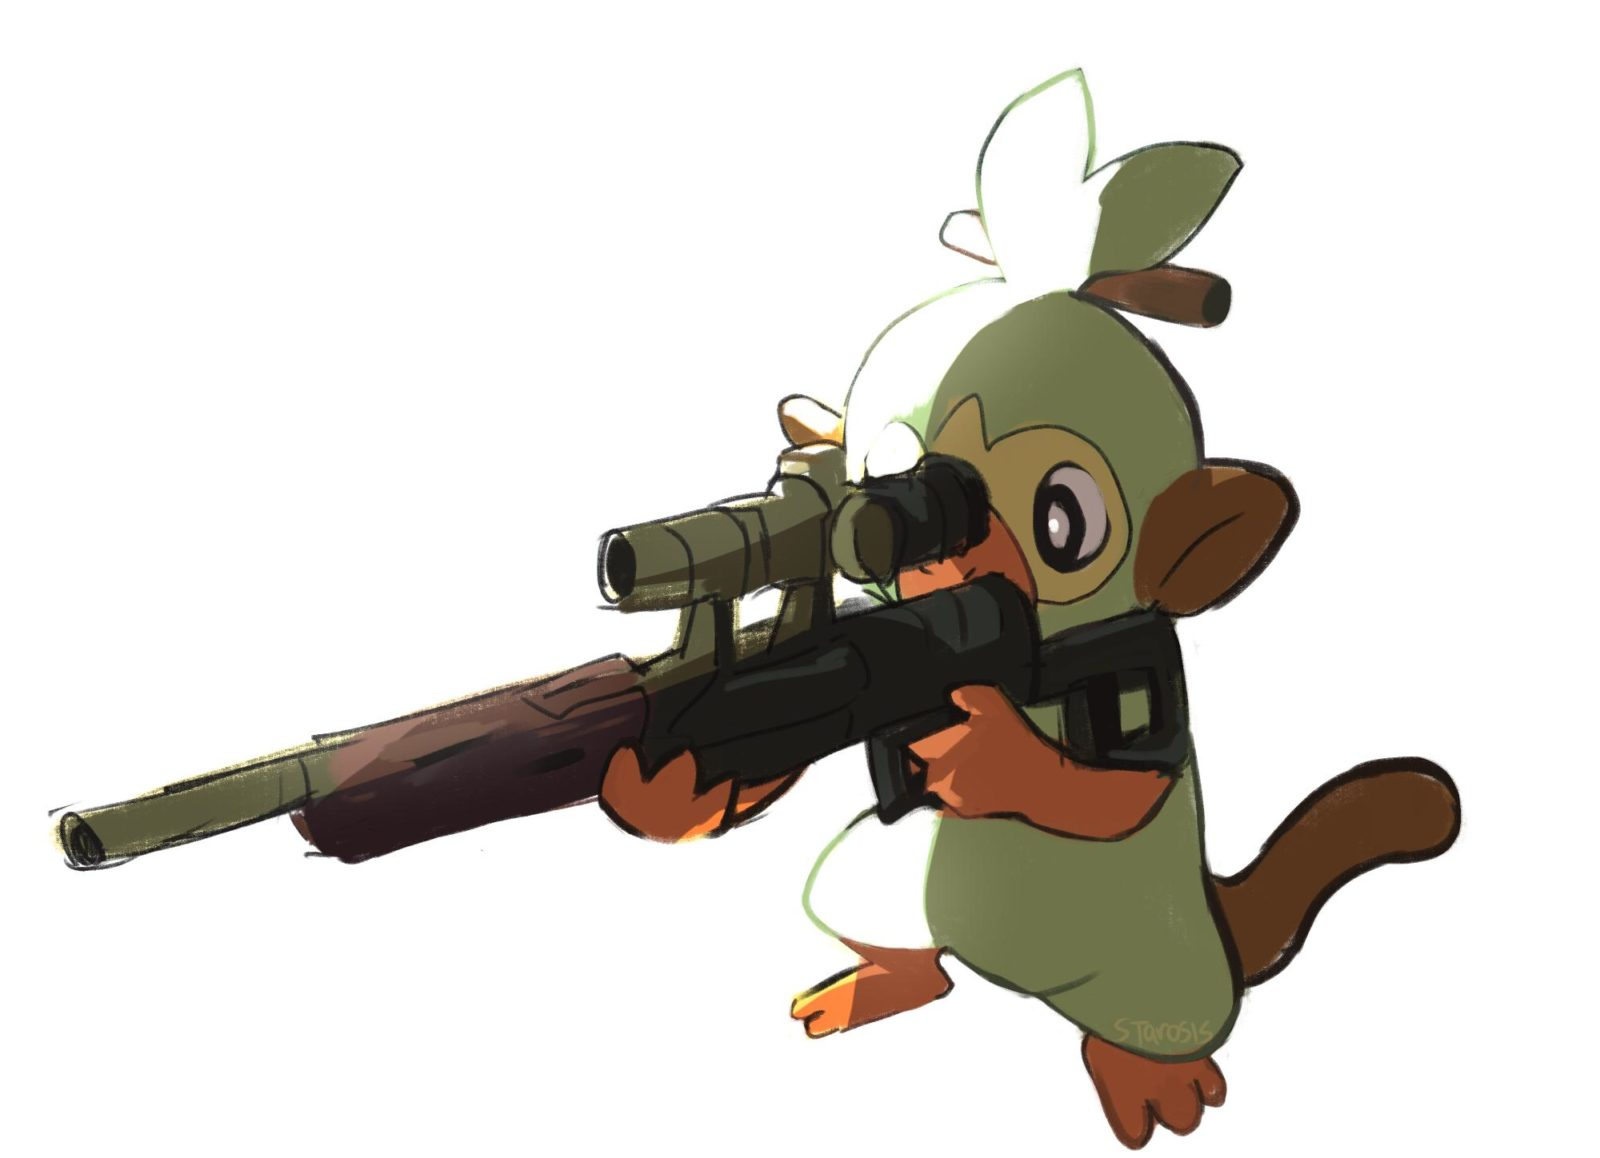 Pokemon Gun Meme Explained Memepedia